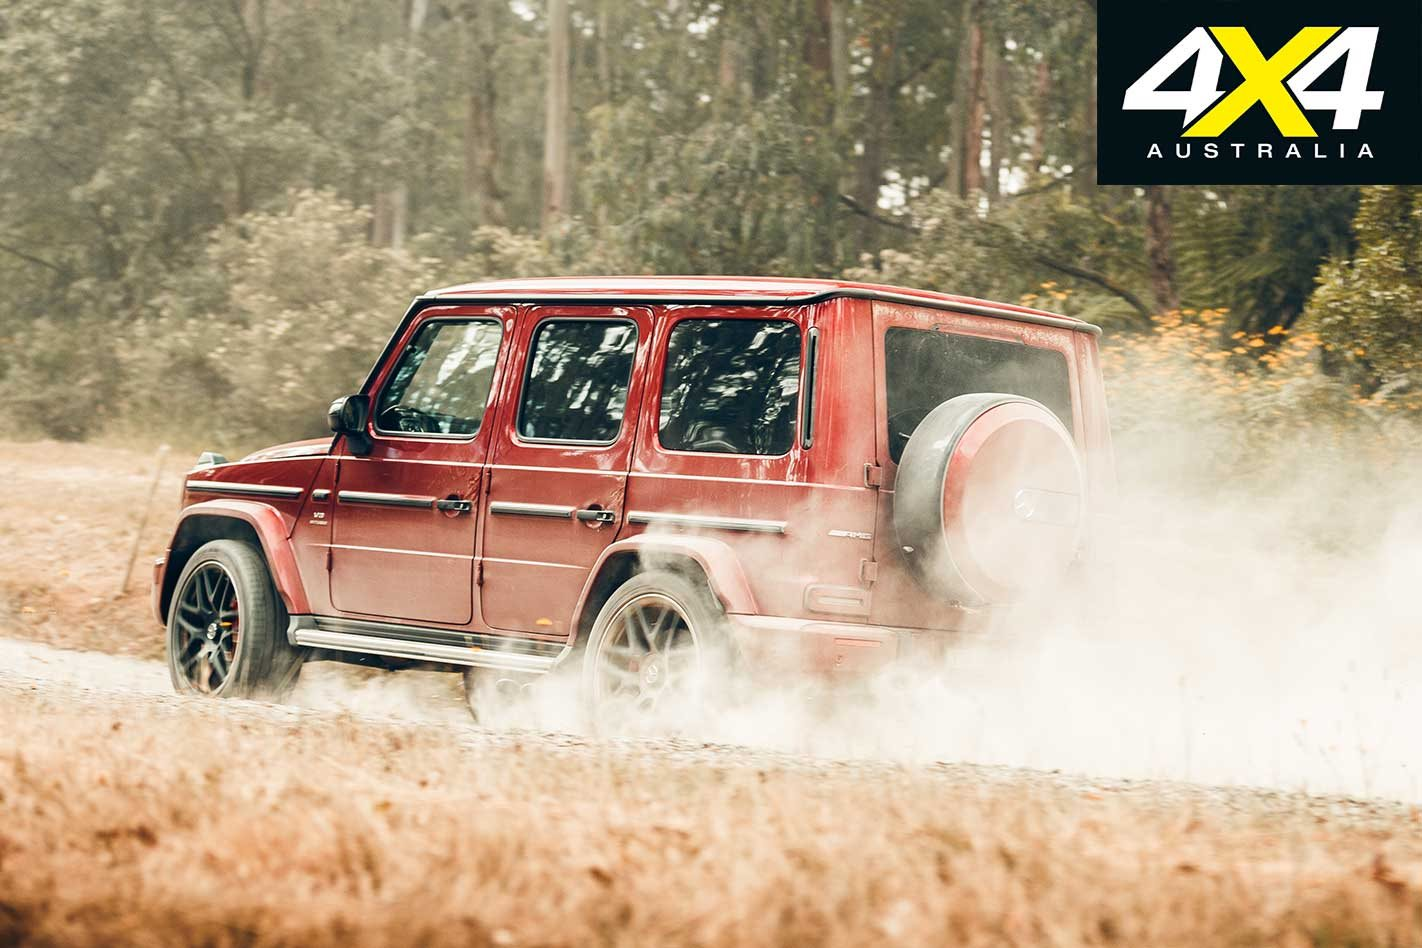 2019 Mercedes-AMG G63 first drive 4x4 review